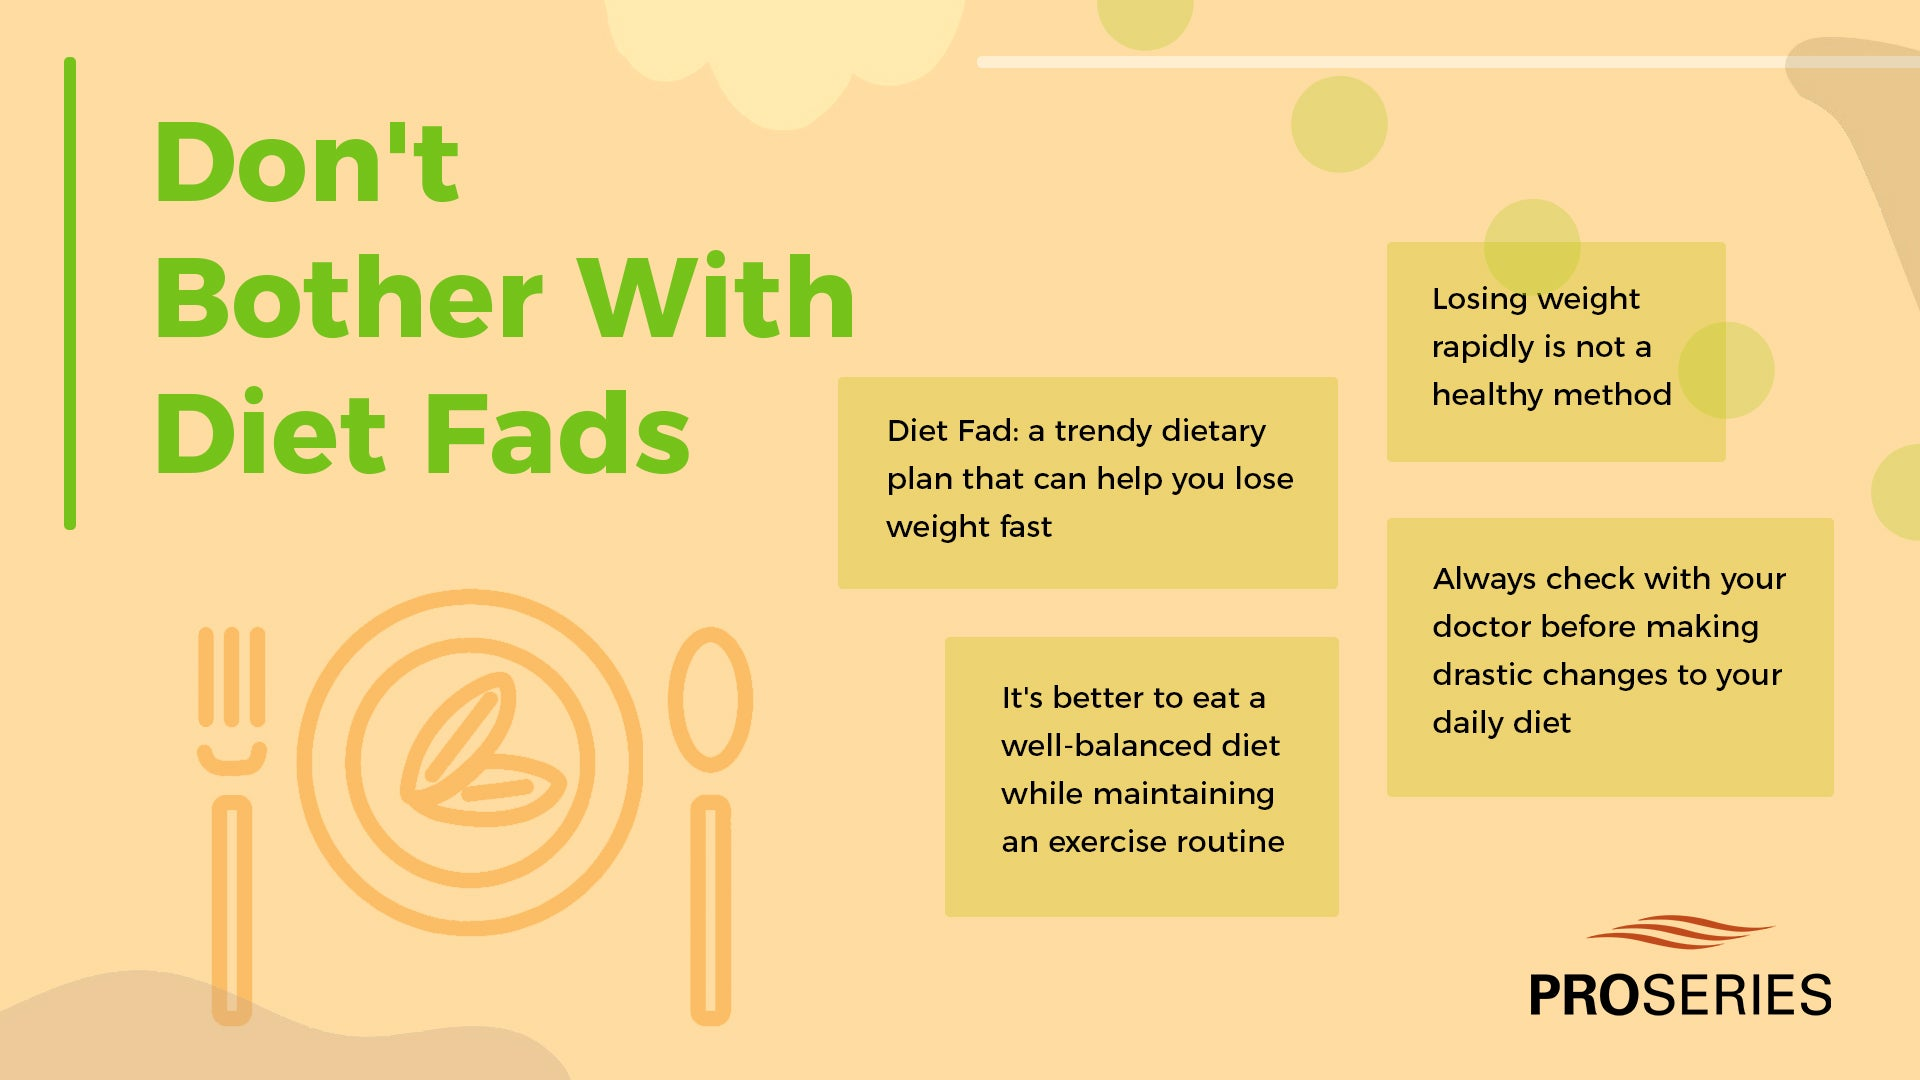 Don't Bother With Diet Fads 1. Diet Fad: a trendy dietary plan that can help you lose weight fast 2. Losing weight rapidly is not a healthy method 3. It's better to eat a well-balanced diet while maintaining an exercise routine 4. Always check with your doctor before making drastic changes to your daily diet